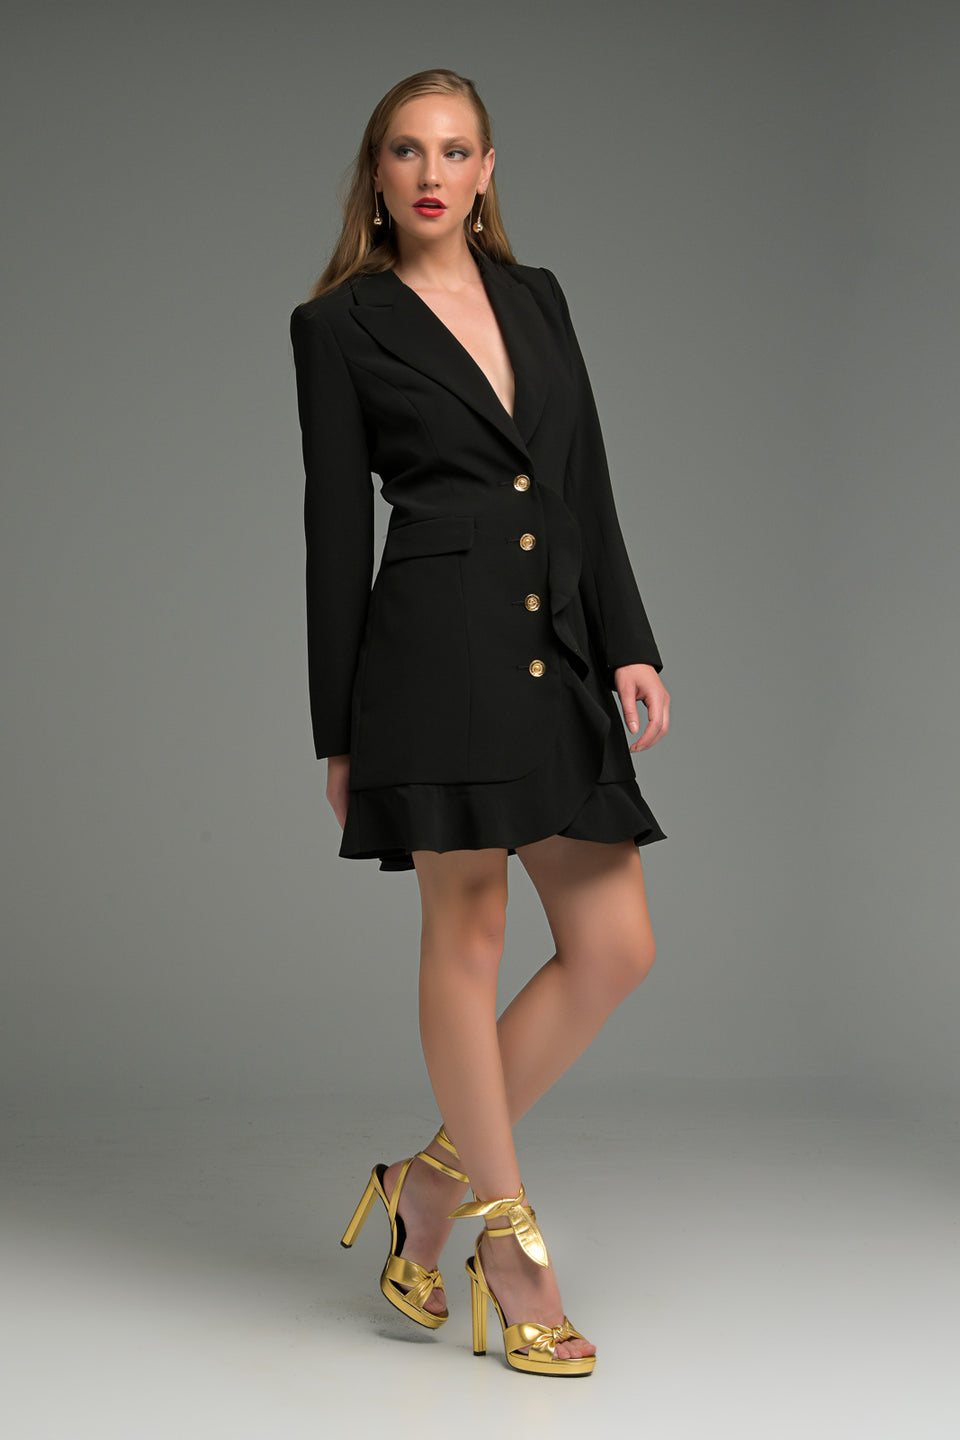 BLAZER DRESS WITH GOLD BUTTONS AND RUFFLE DECORATIVECORAT BLAZER DRESS WITH GOLD BUTTONS AND RUFFLE DECORATIVECORAT